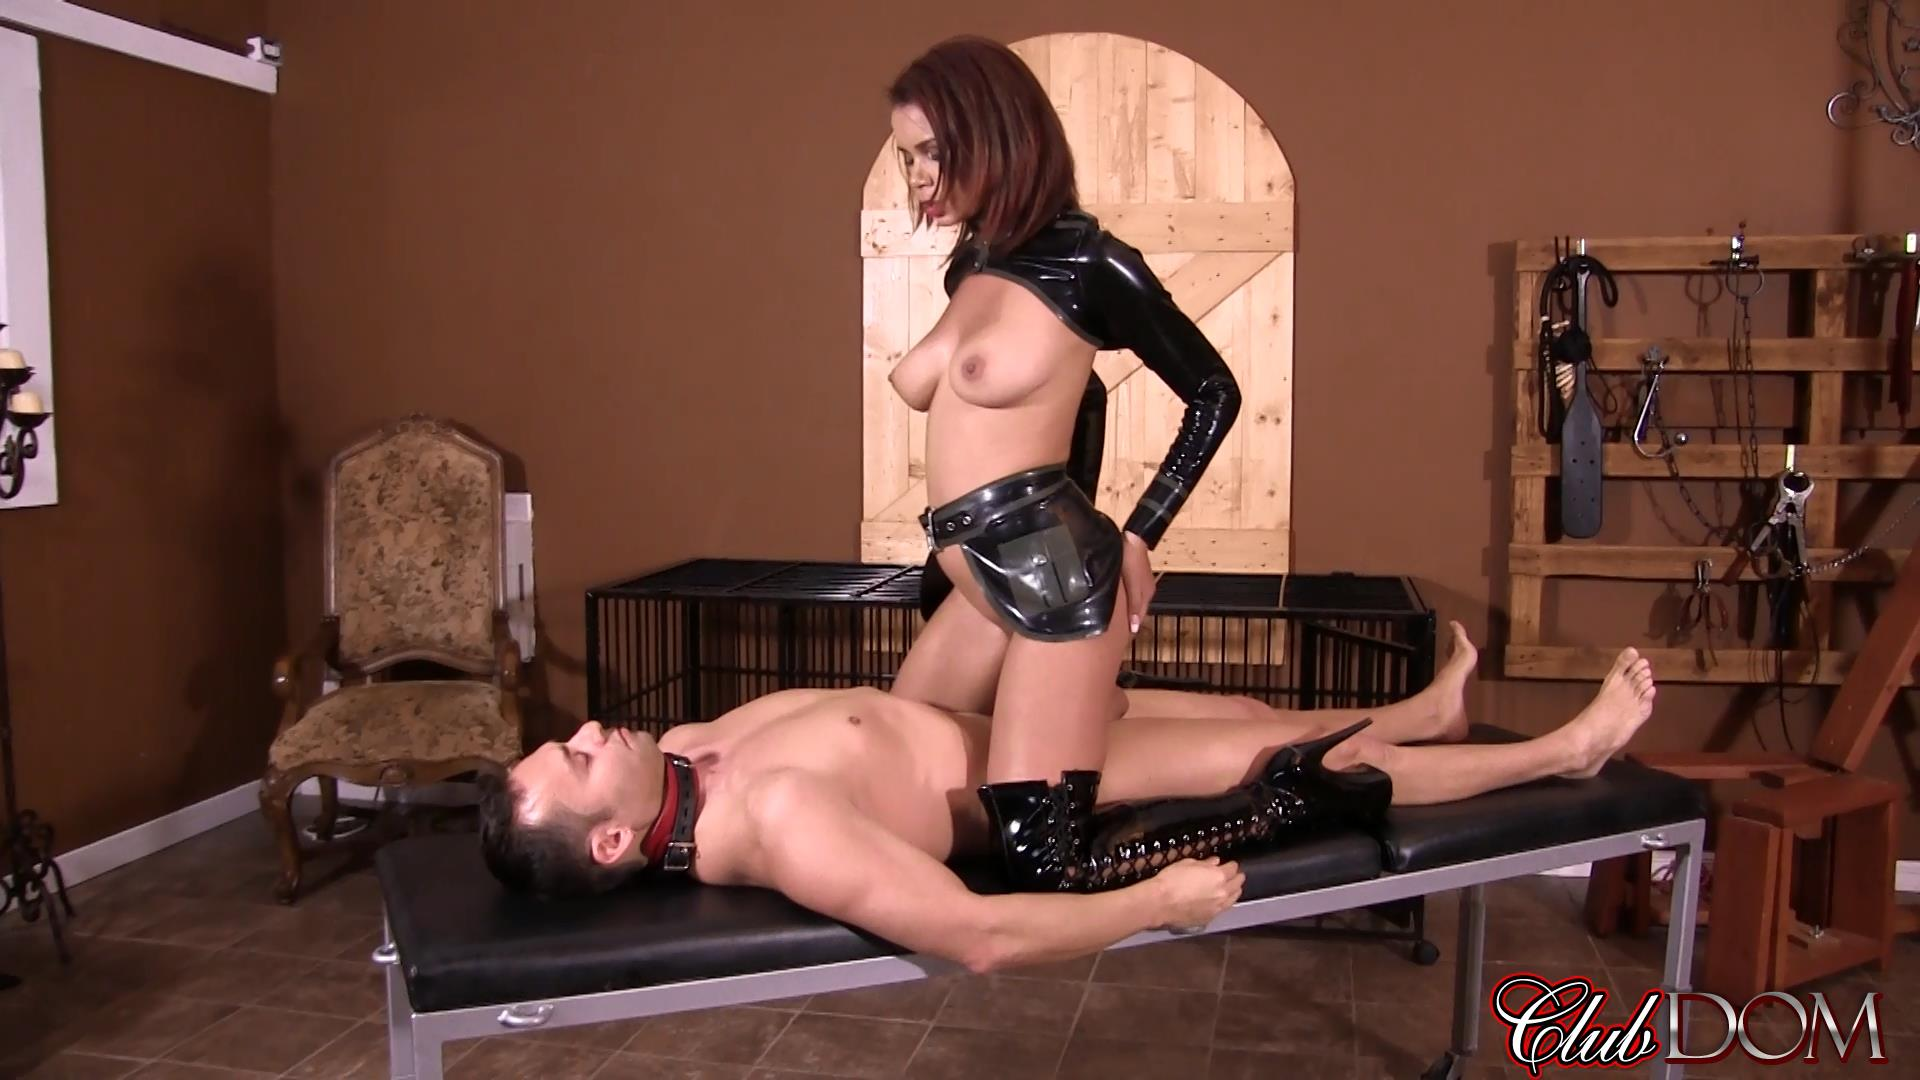 Bdsm female domination stories